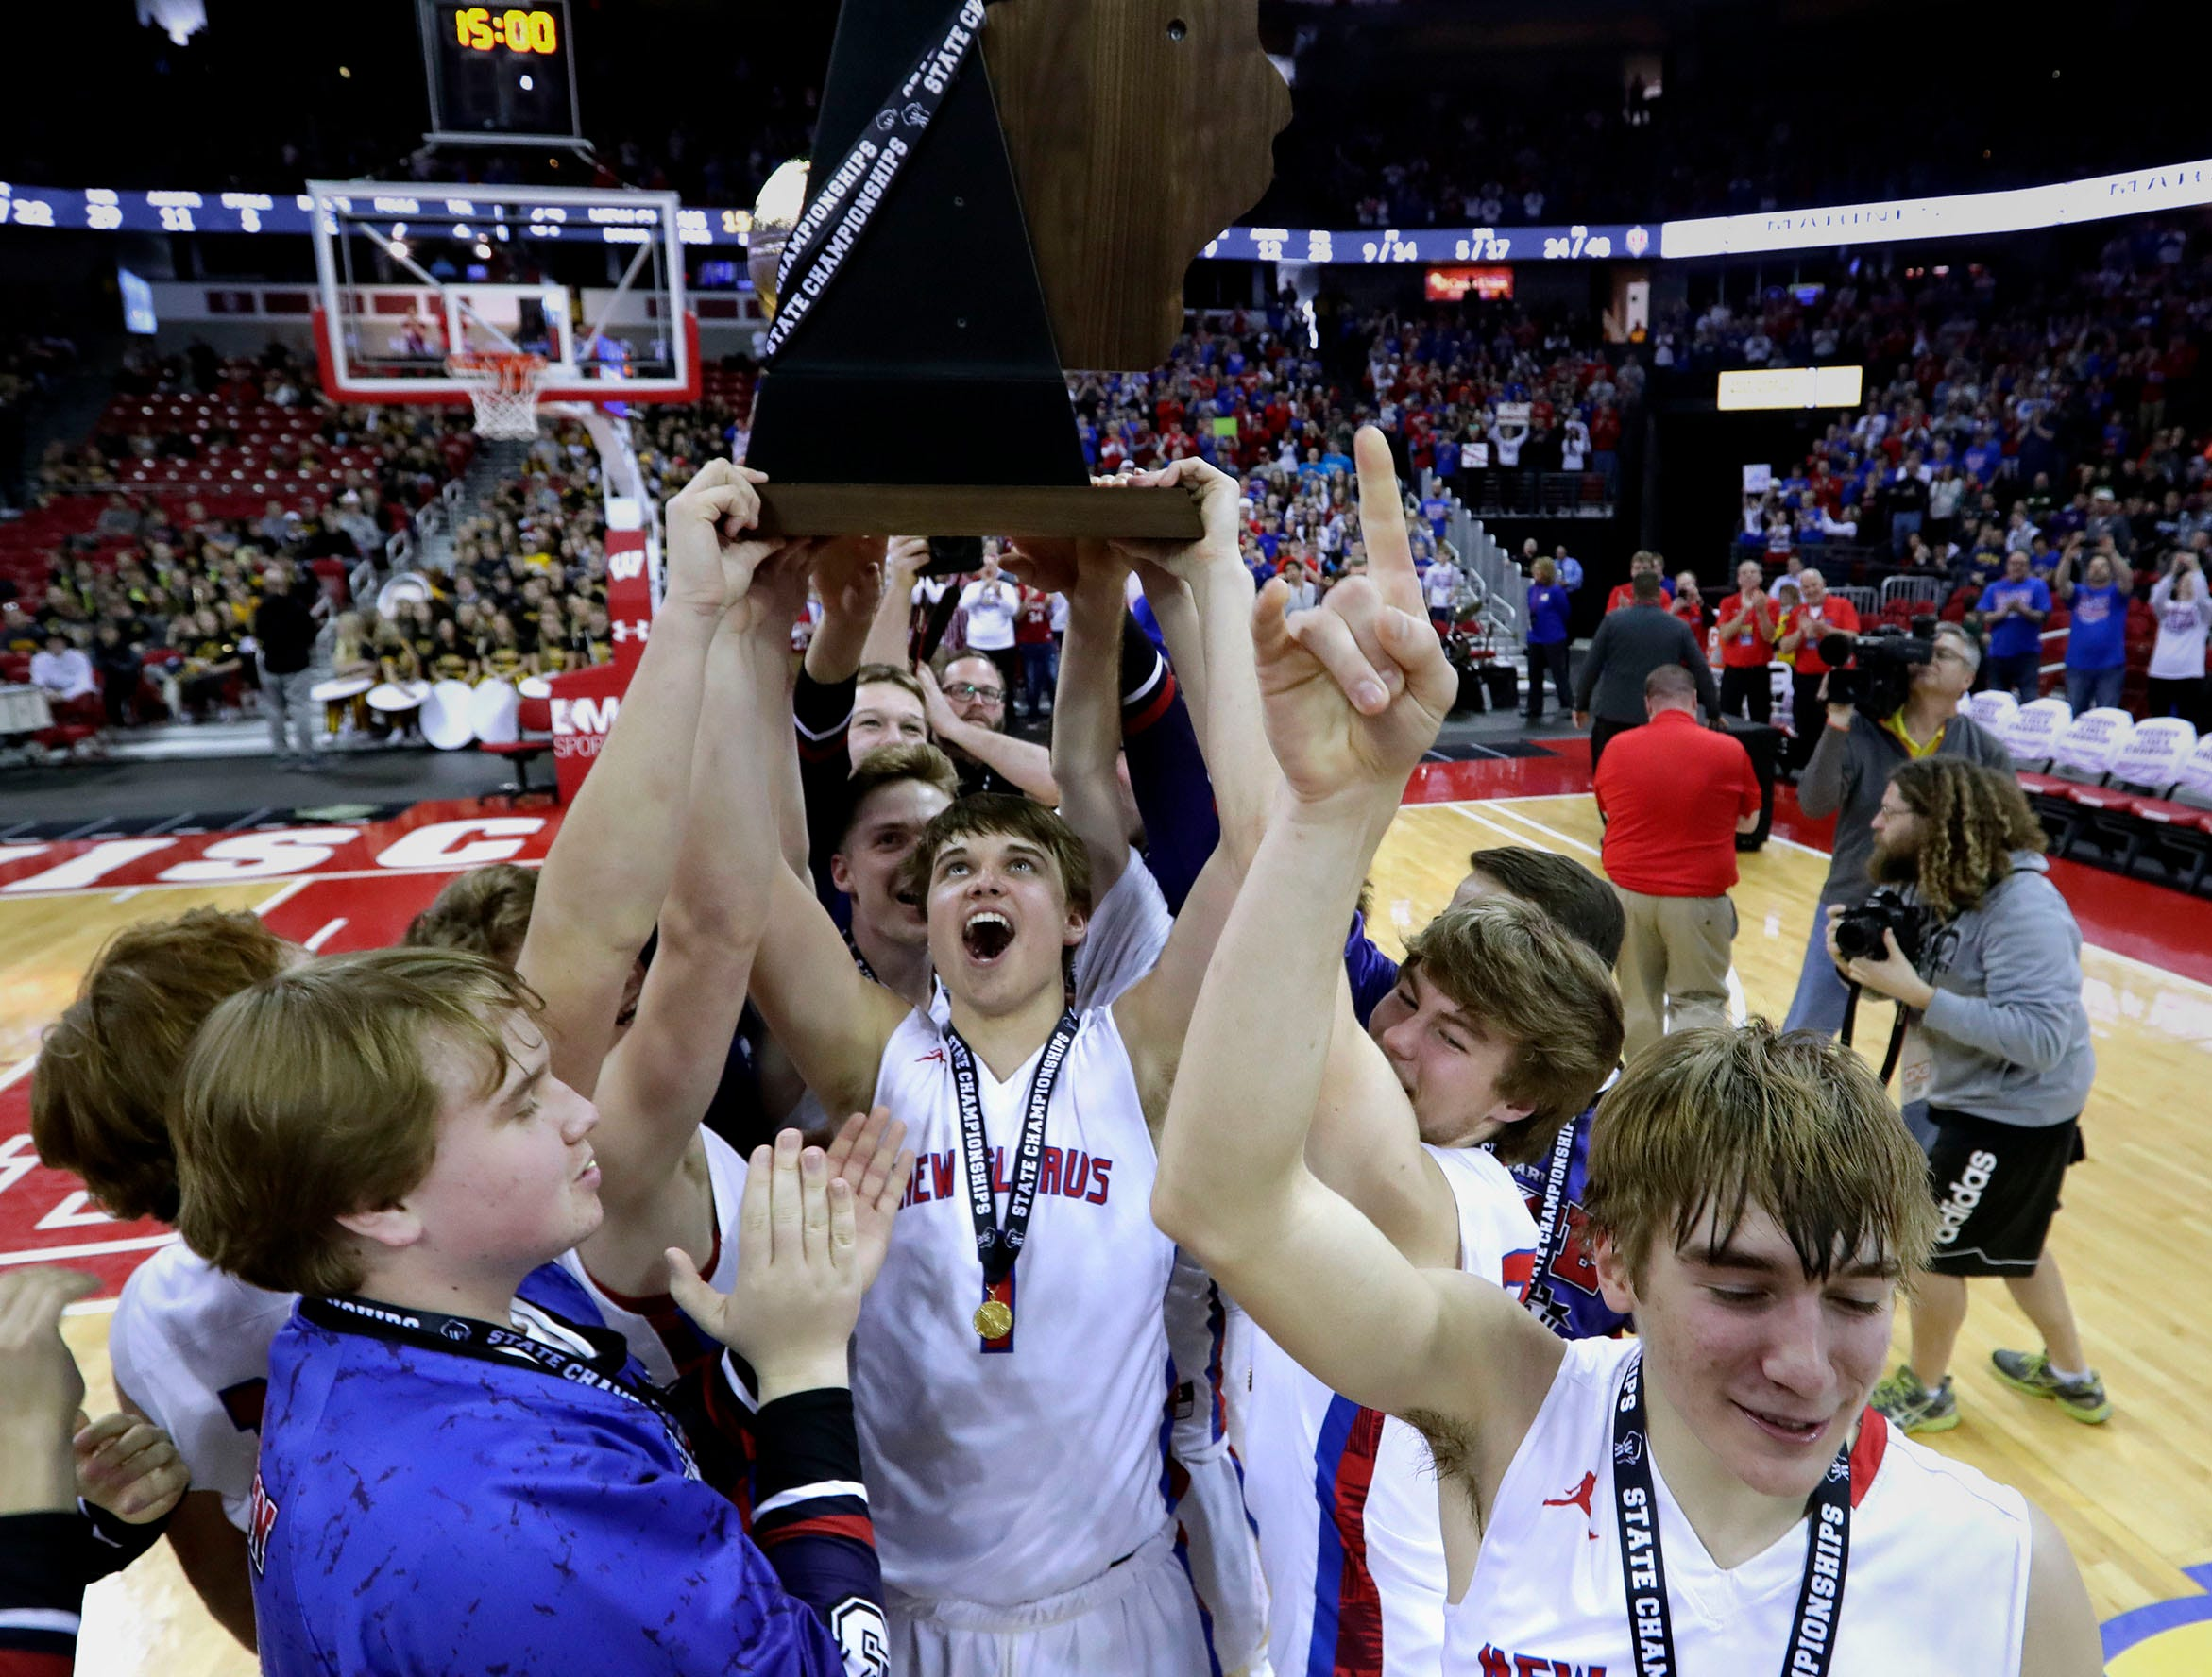 New Glarus players show off their WIAA Division 4 championship trophy after beating Oshkosh Lourdes, 67-62, in the title game Saturday.